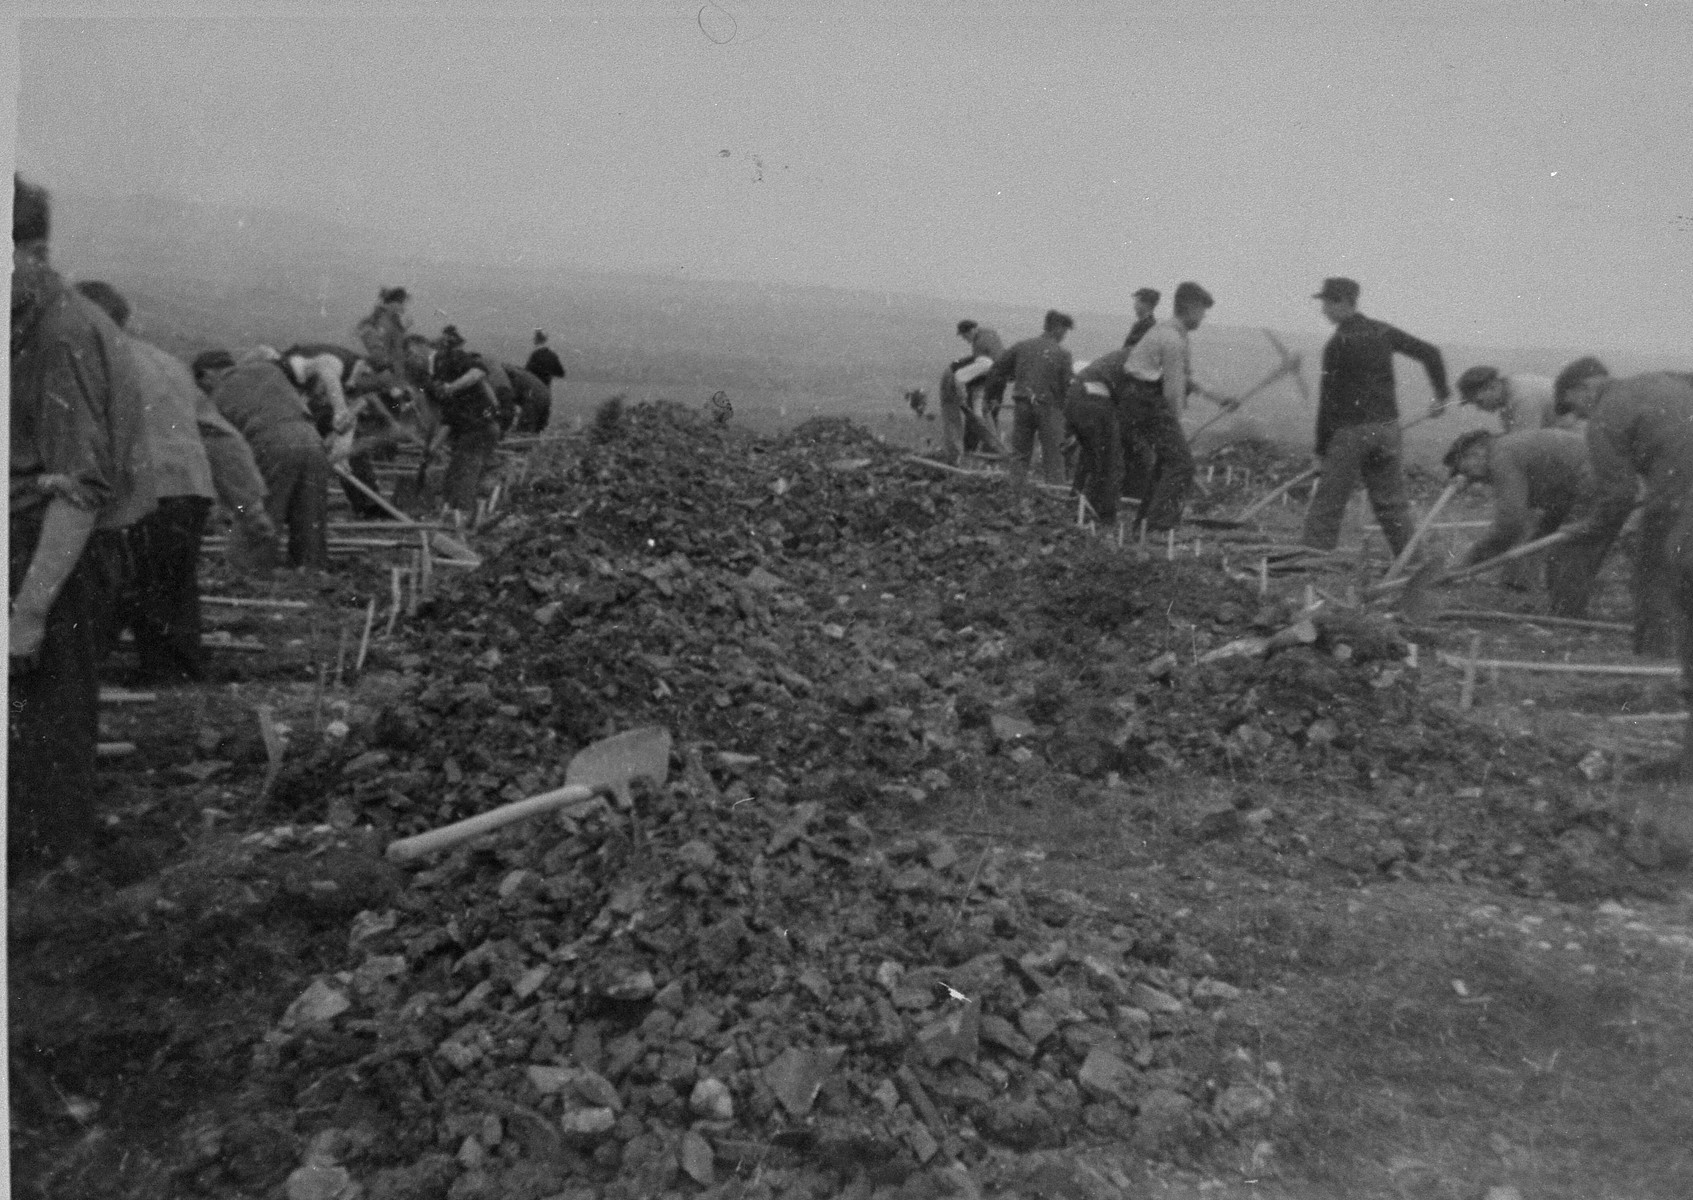 German civilians conscripted from the area surrounding Ohrdruf dig graves for corpses found in the camp by American soldiers.